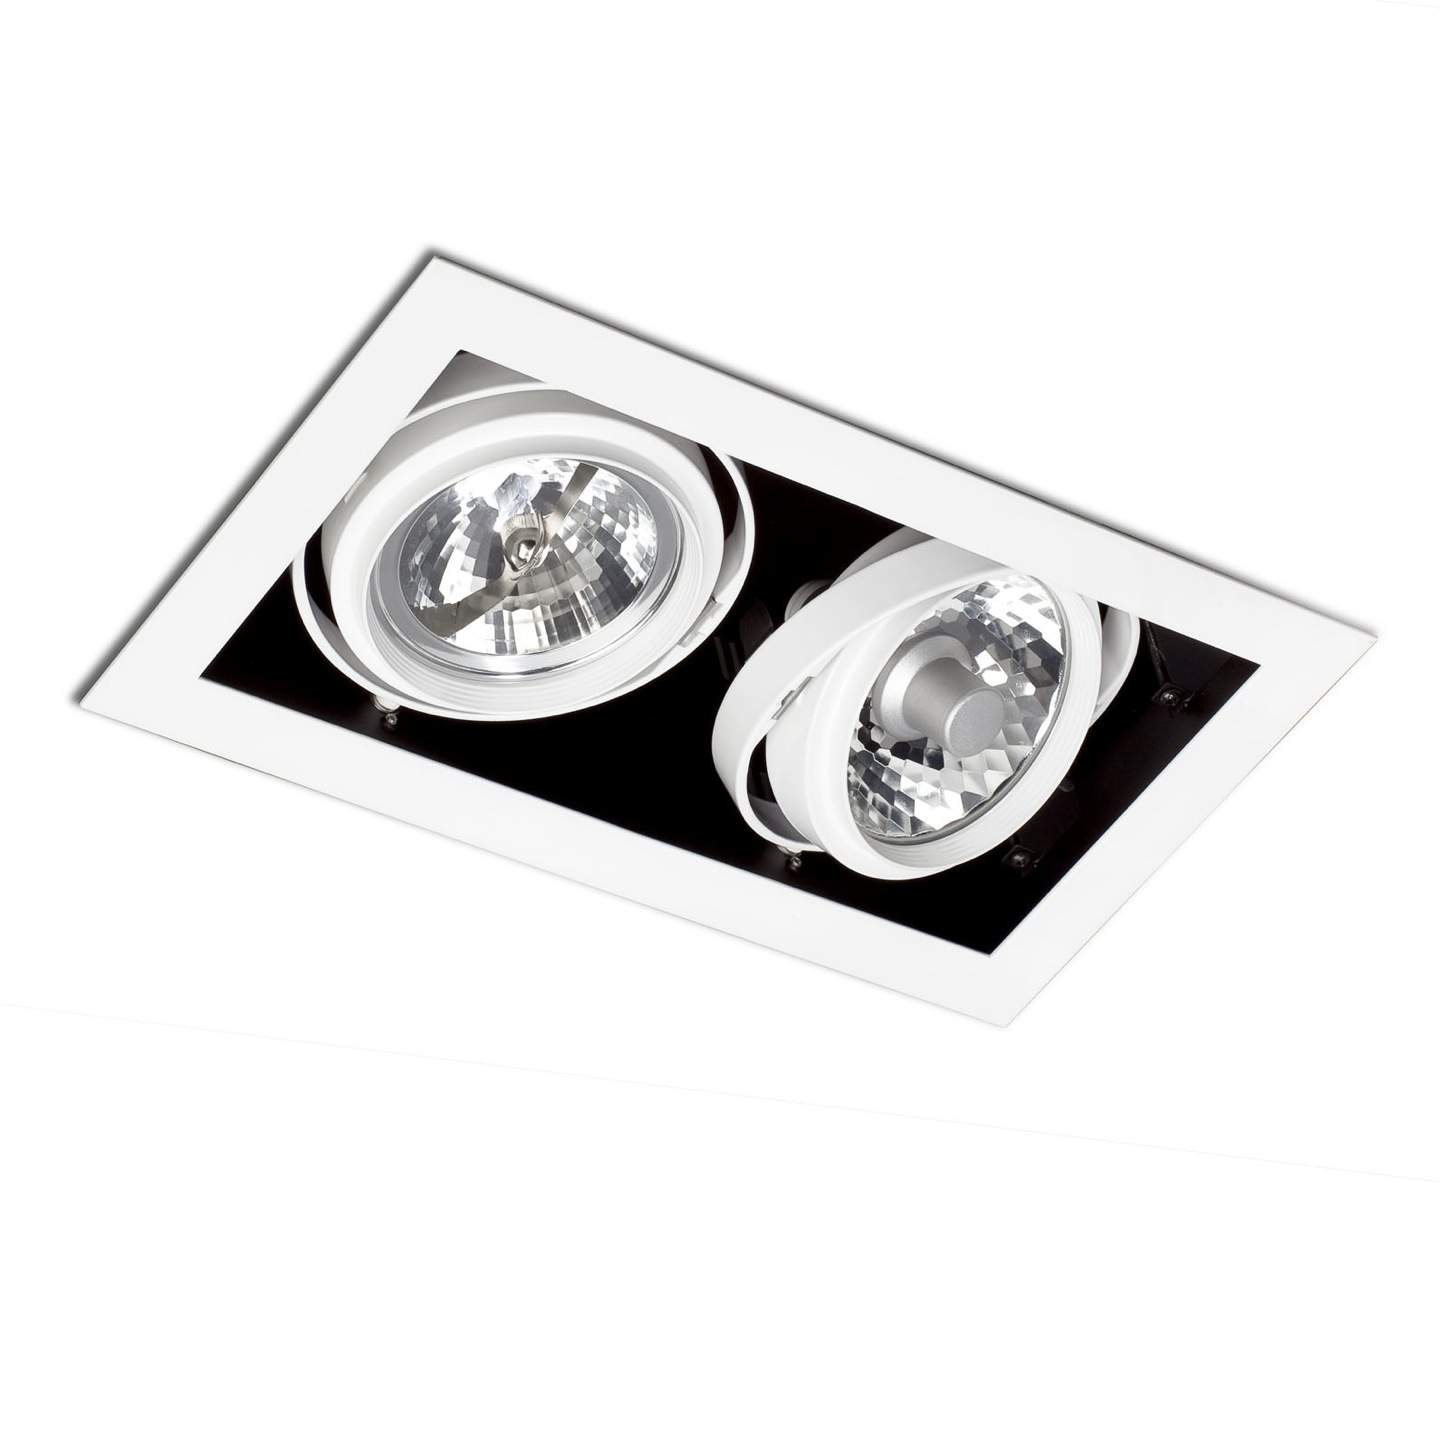 Morris Recessed Ceiling (body without PortaLámpara s) 2xElements white